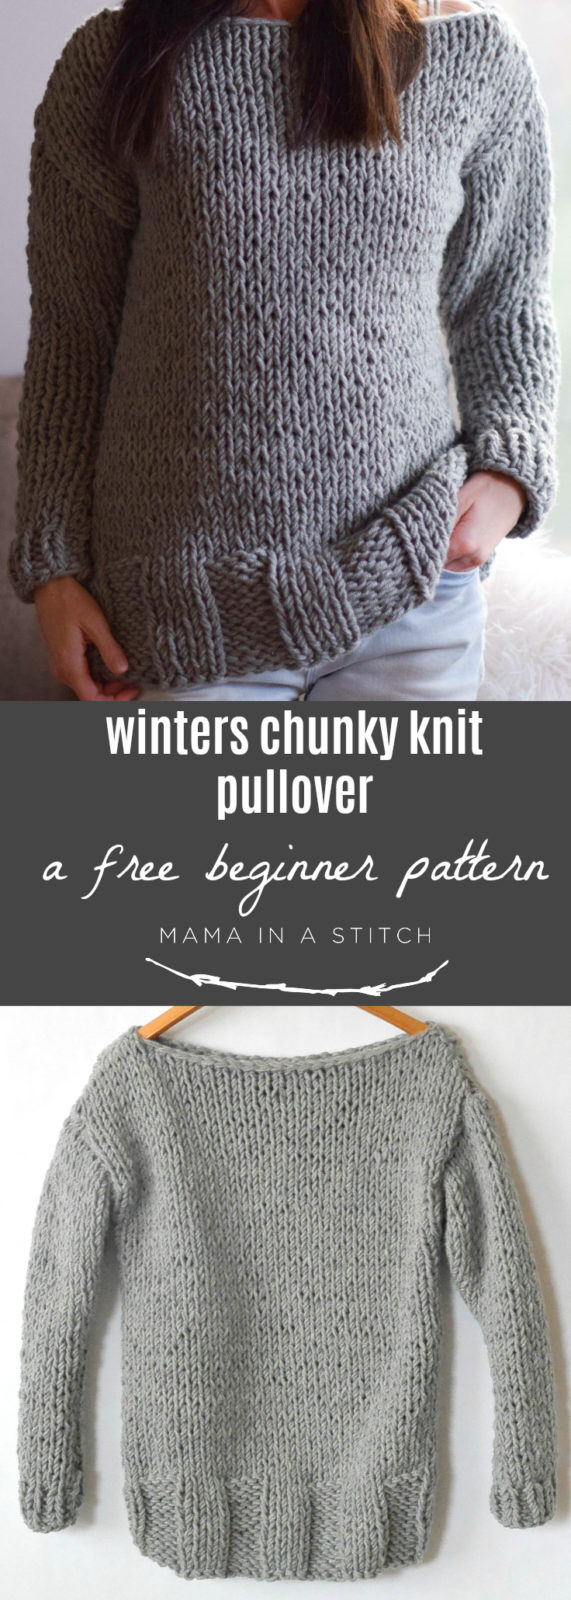 Knitted Pullover Sweater Patterns Winters Chunky Easy Knit Pullover Pattern Mama In A Stitch